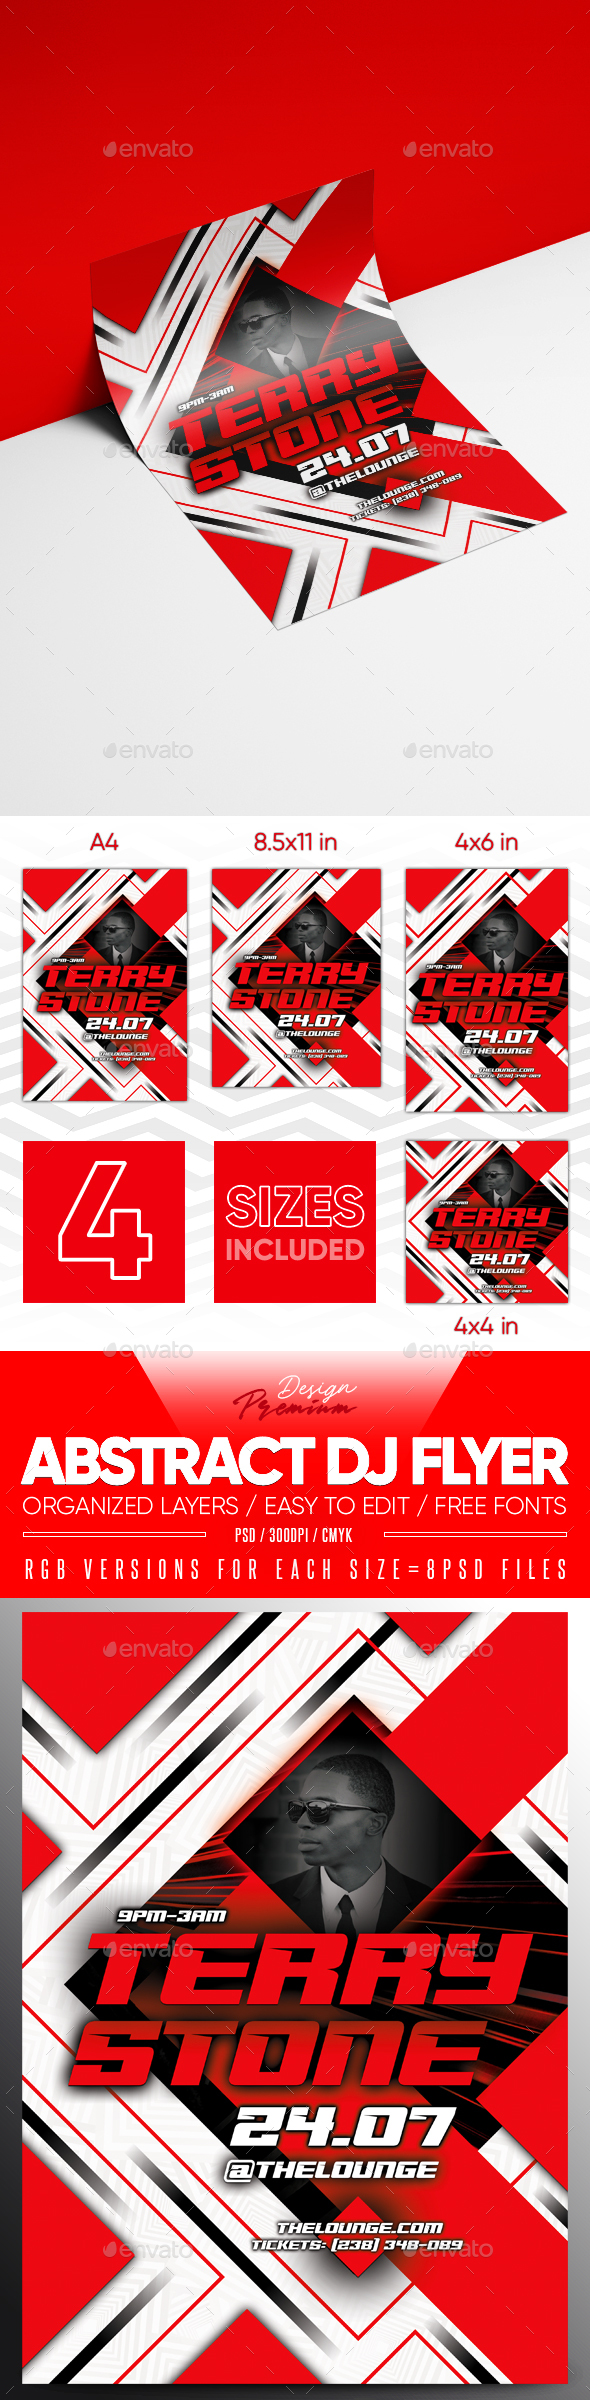 Flyers PSD – Abstract DJ Flyer – Download